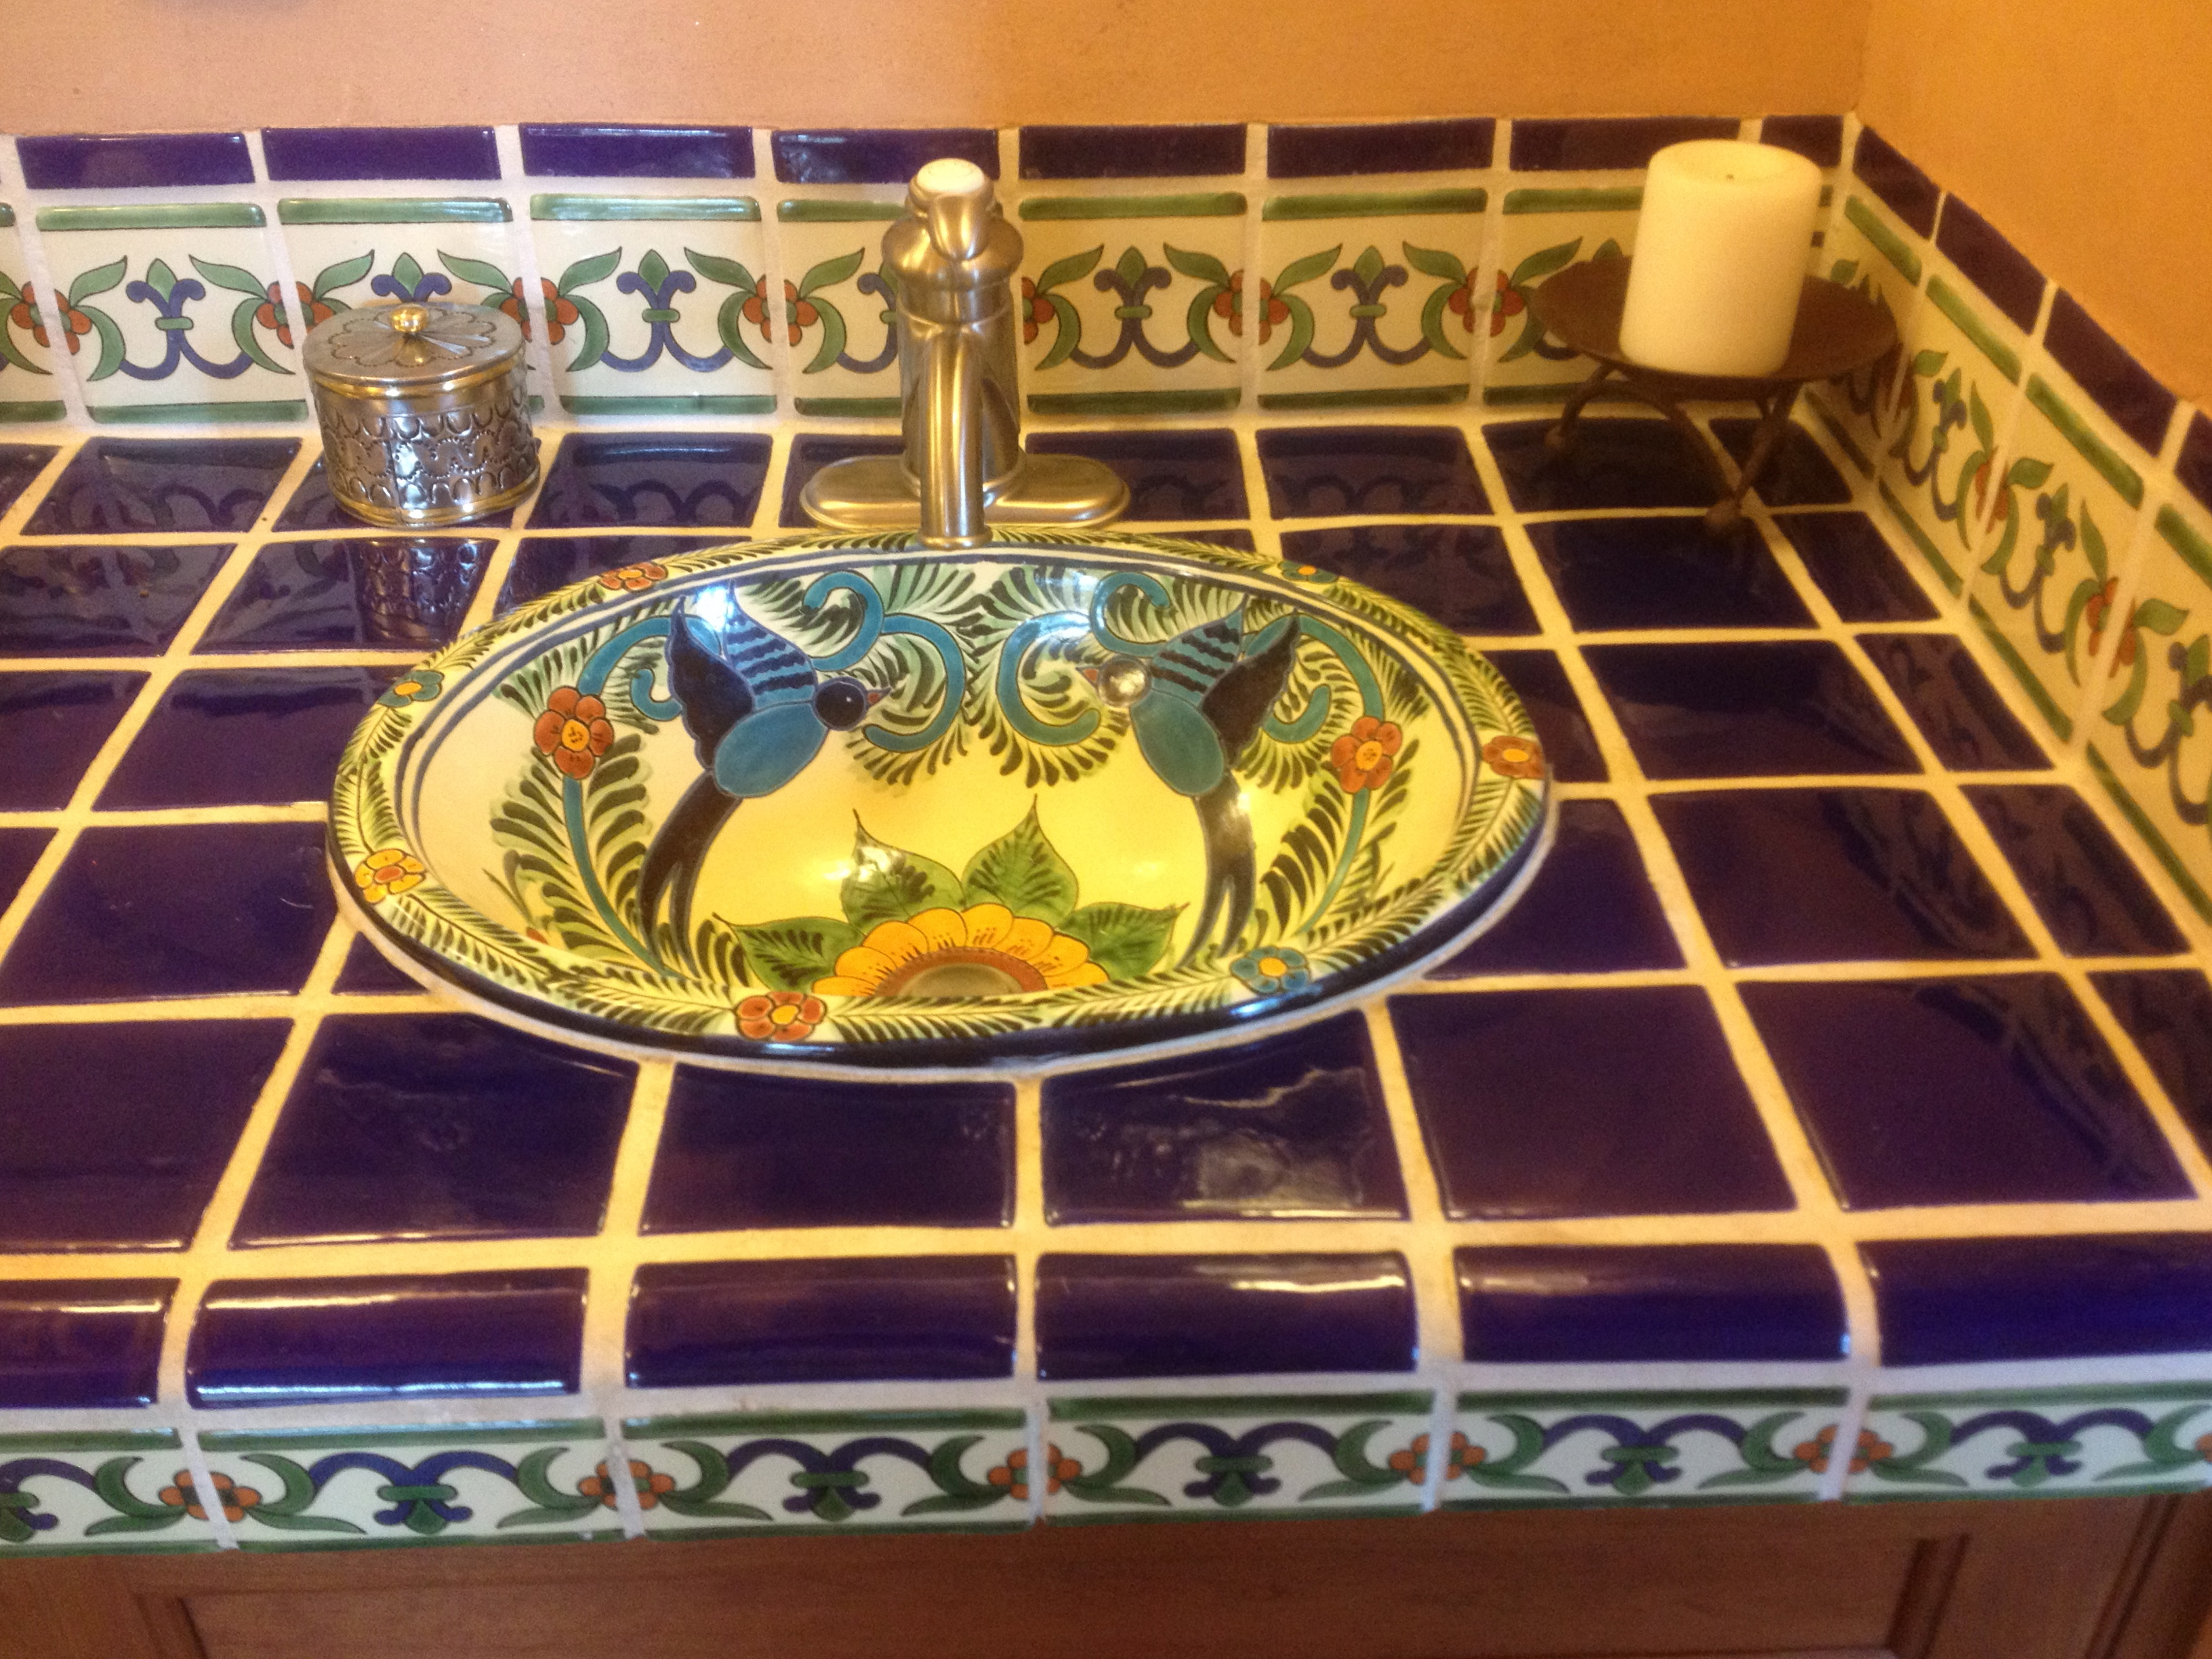 Spanish Tile Countertops Ideas For Using Mexican Tile In Your Kitchen Or Bath